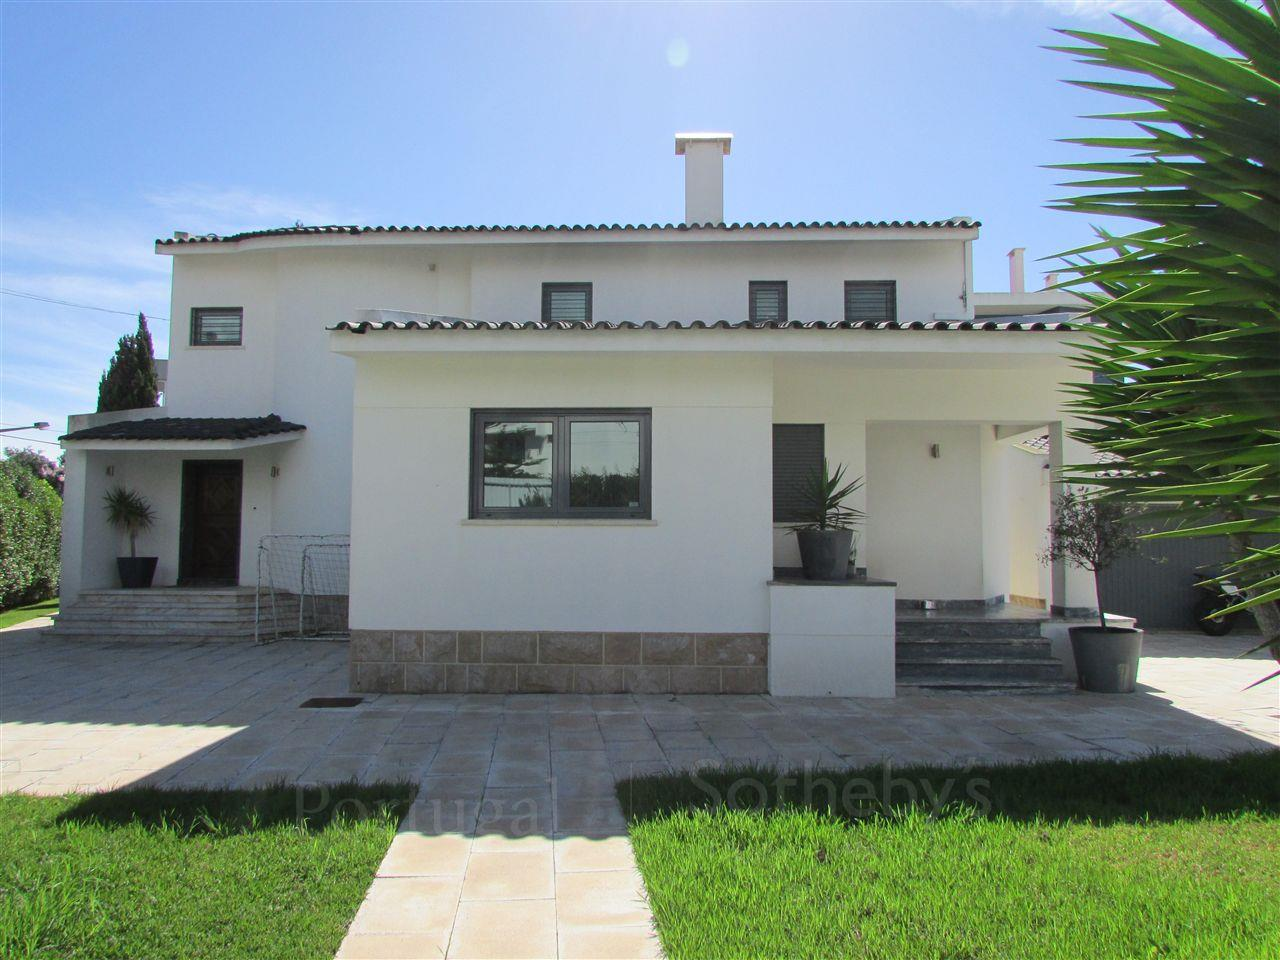 Tek Ailelik Ev için Satış at House, 5 bedrooms, for Sale Cascais, Lisboa, Portekiz